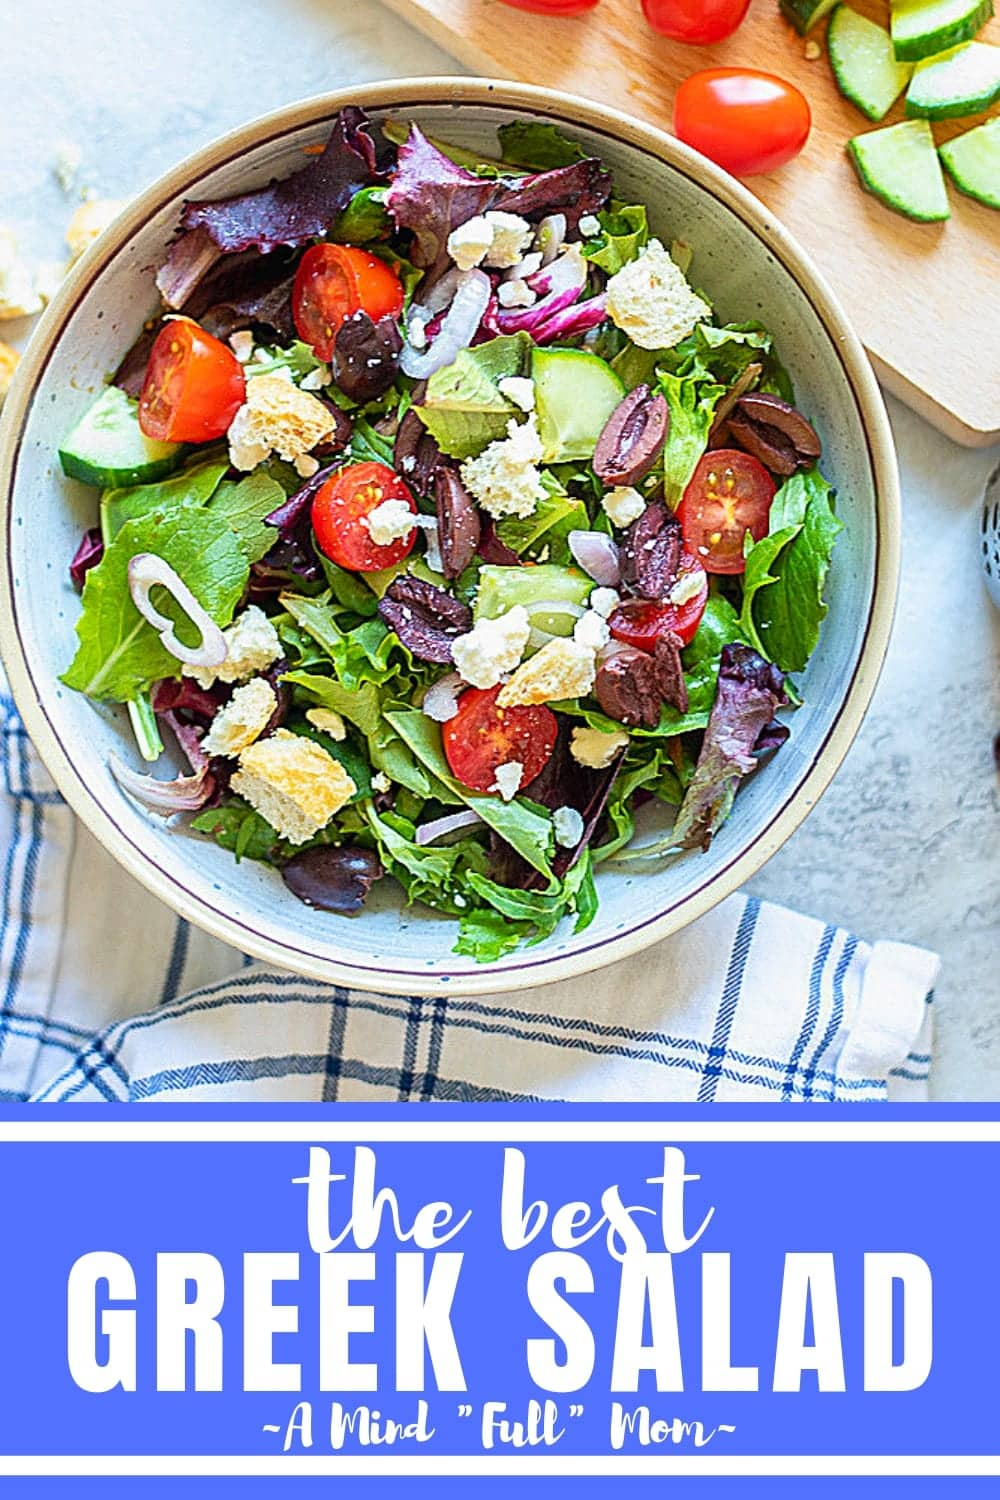 A copycat version of your favorite Greek salad you would order at Panera or a pizza shop--this Mediterranean inspired salad always hits the spot!